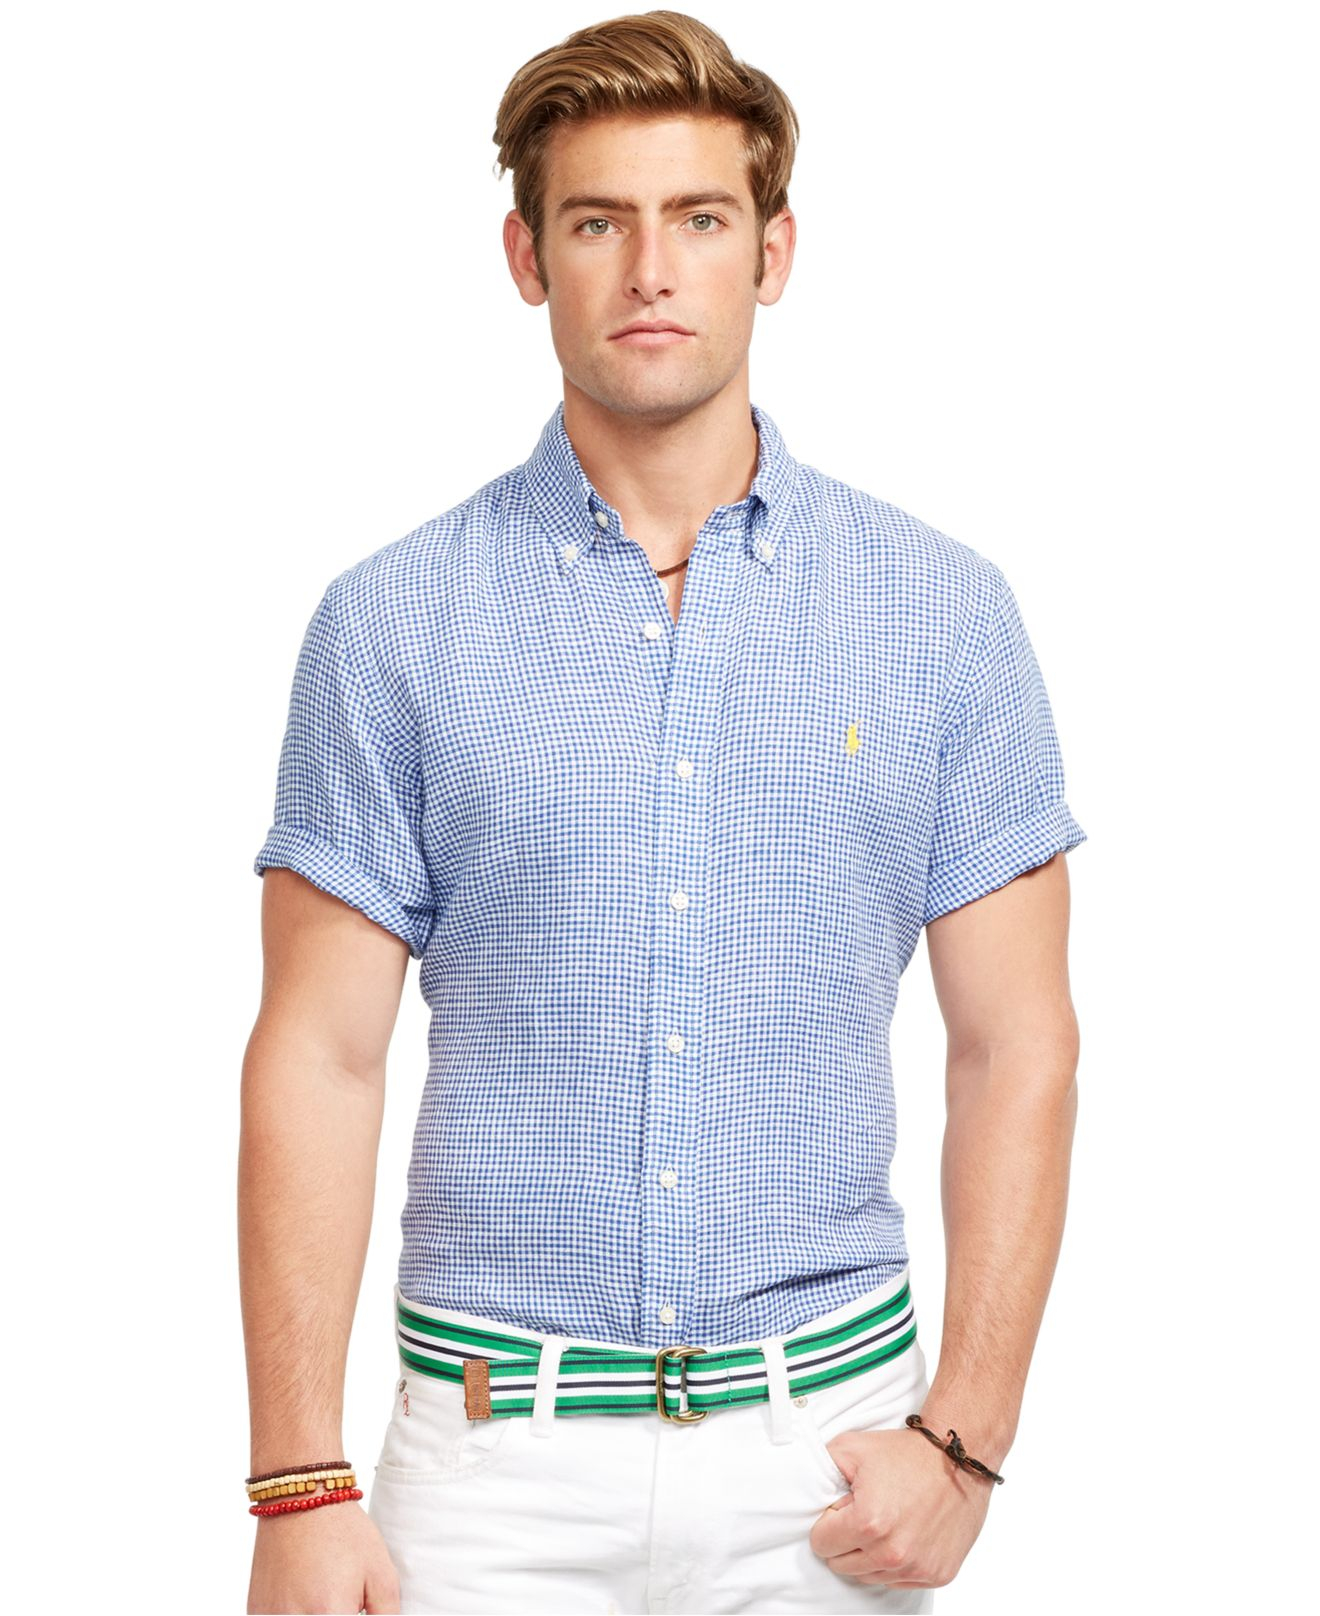 Shop Perry Ellis discounted clothing for men, including pants, polos, shirts, suits, shorts and more apparel items on sale now. Find your favorite styles and take advantage of prices at a discount on quality and comfortable apparel.